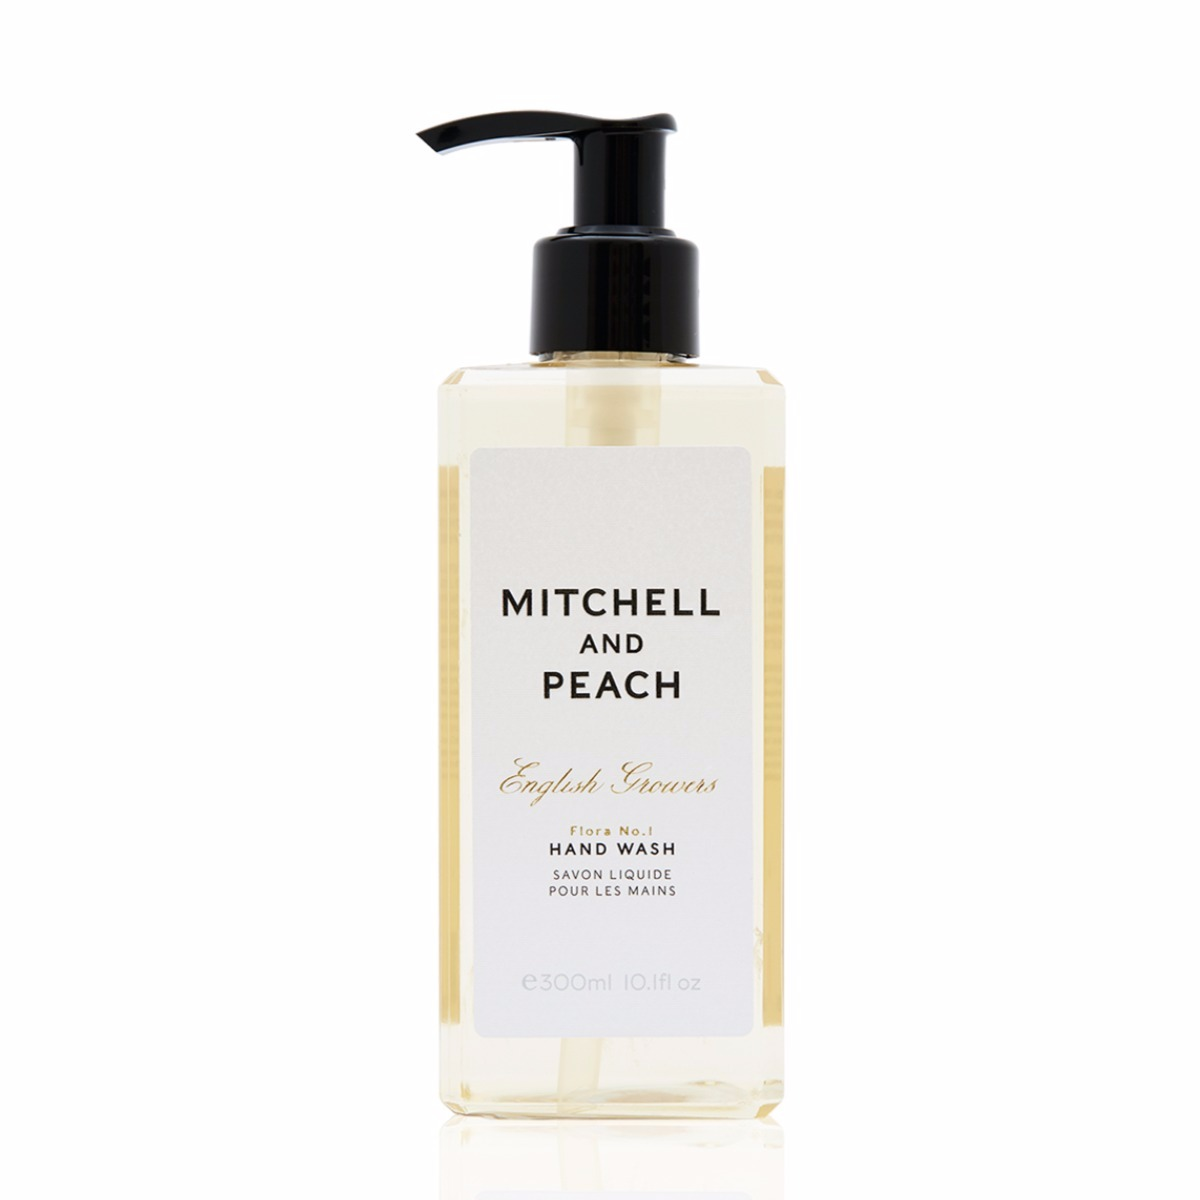 Mitchell and Peach Handwash